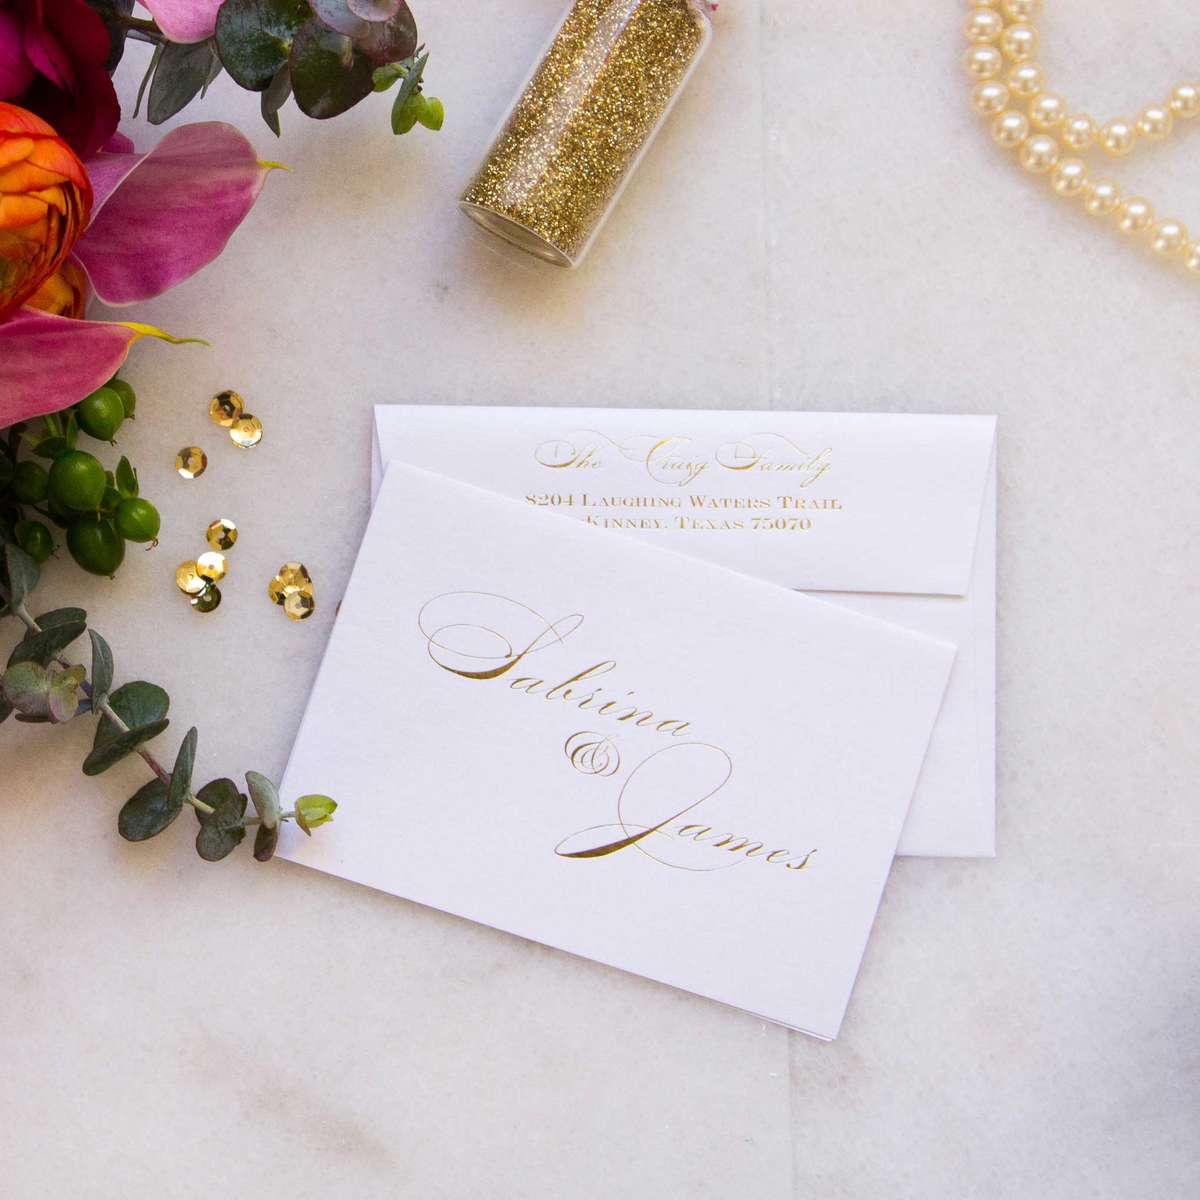 When Do You Send Invitations For Wedding: When To Send Wedding Save The Dates, Invitations & Thank